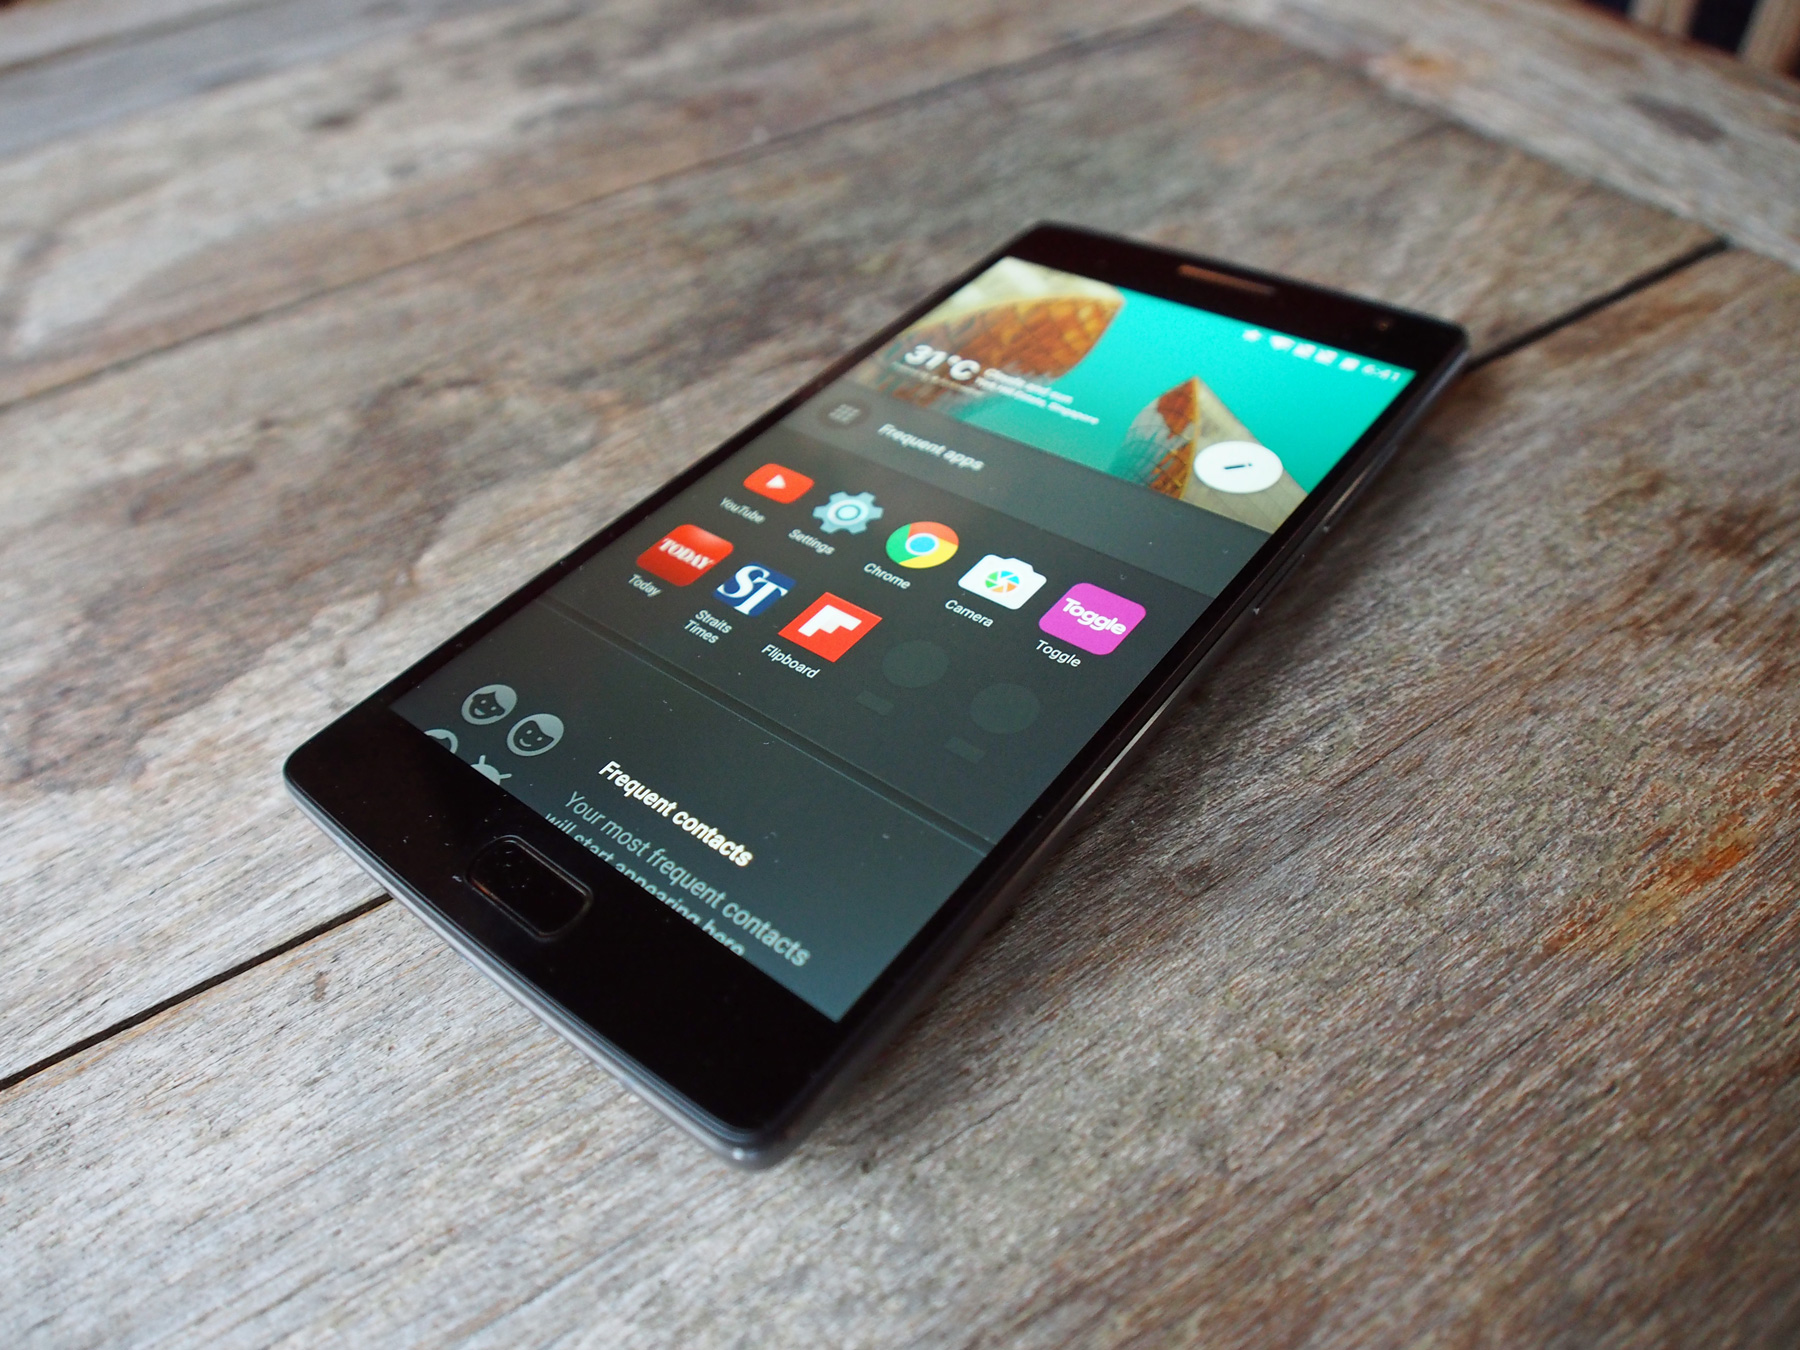 First look at the OnePlus 2 in Singapore - HardwareZone.com.sg